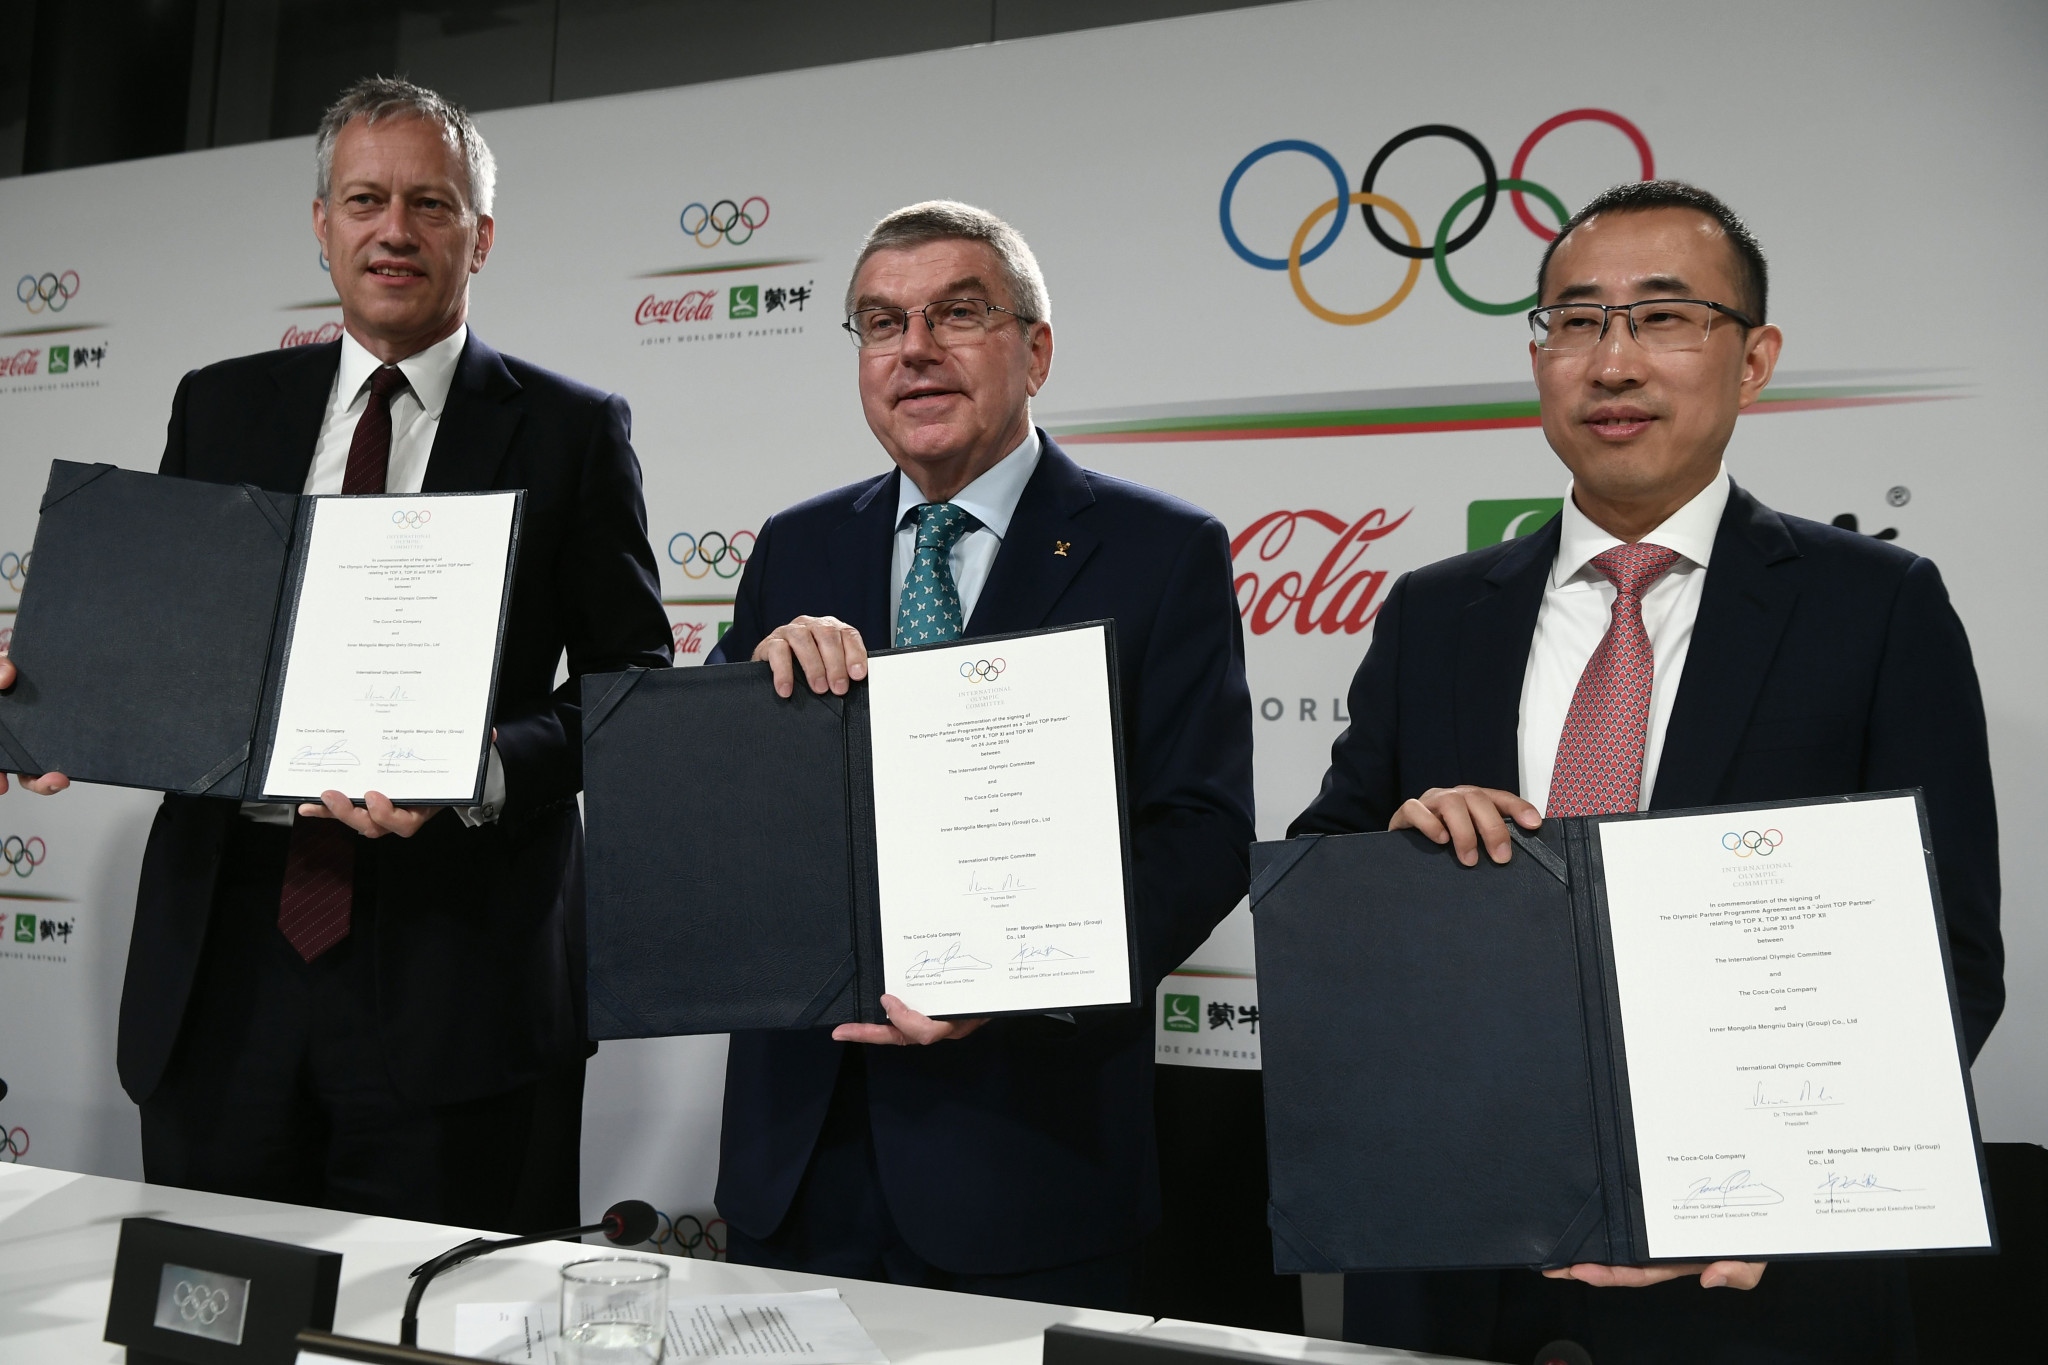 IOC President Thomas Bach, centre, shows off the newly-signed contract with Coca-Cola chief executive and chairman James Quincey, left, and Jeffrey Lu, chief executive of Mengniu, right ©Getty Images